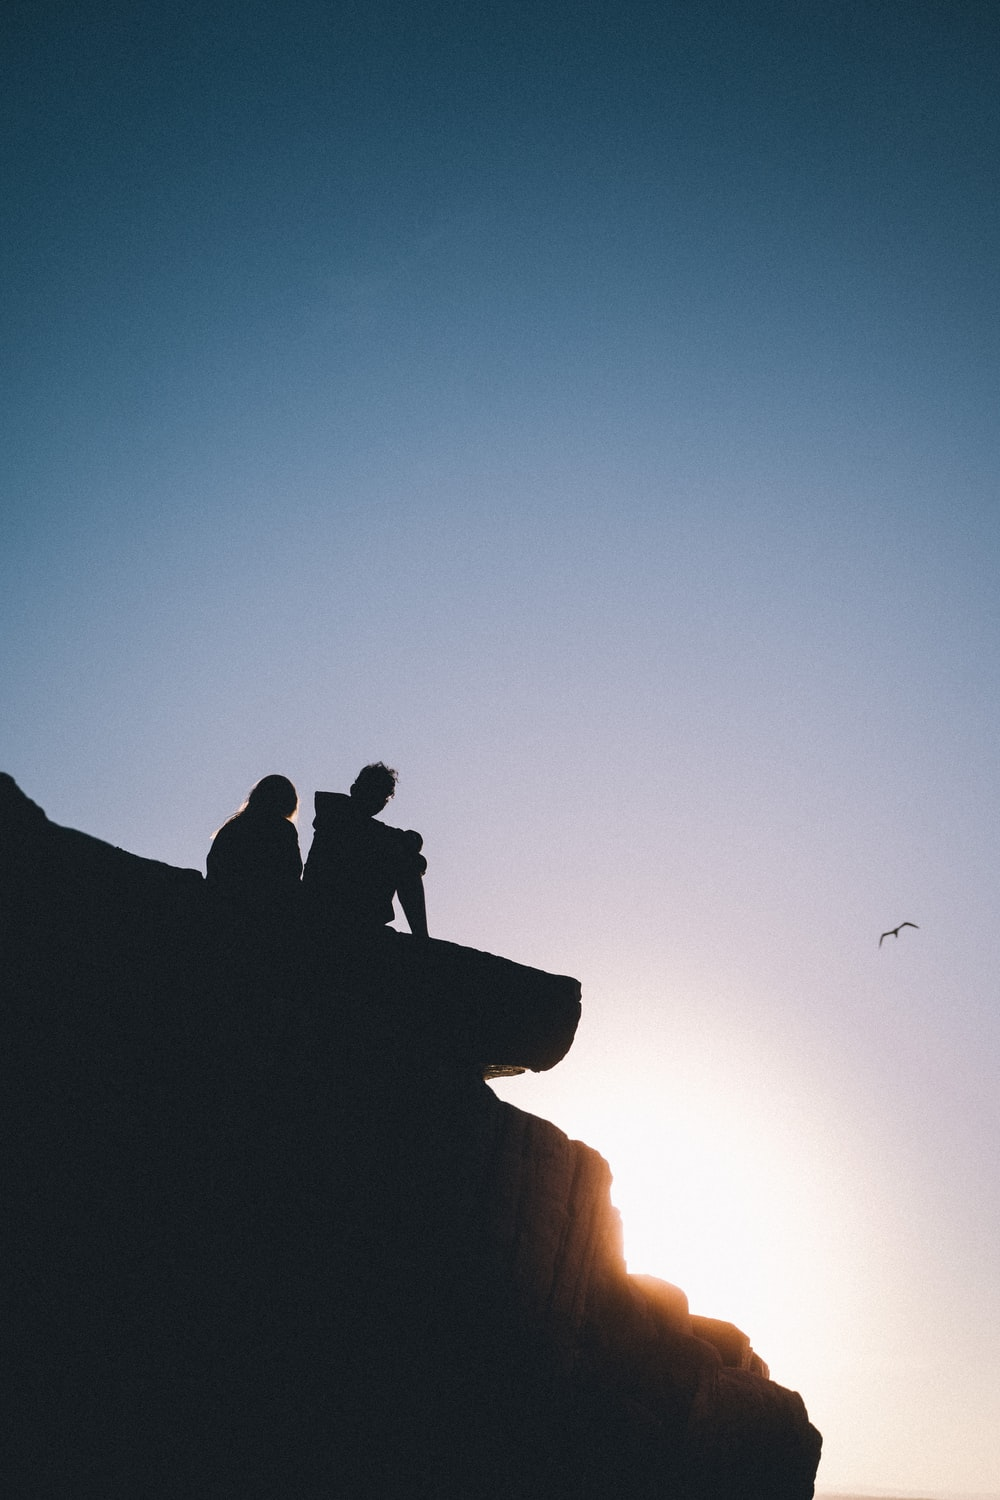 silhouette of 2 men sitting on rock formation during sunset